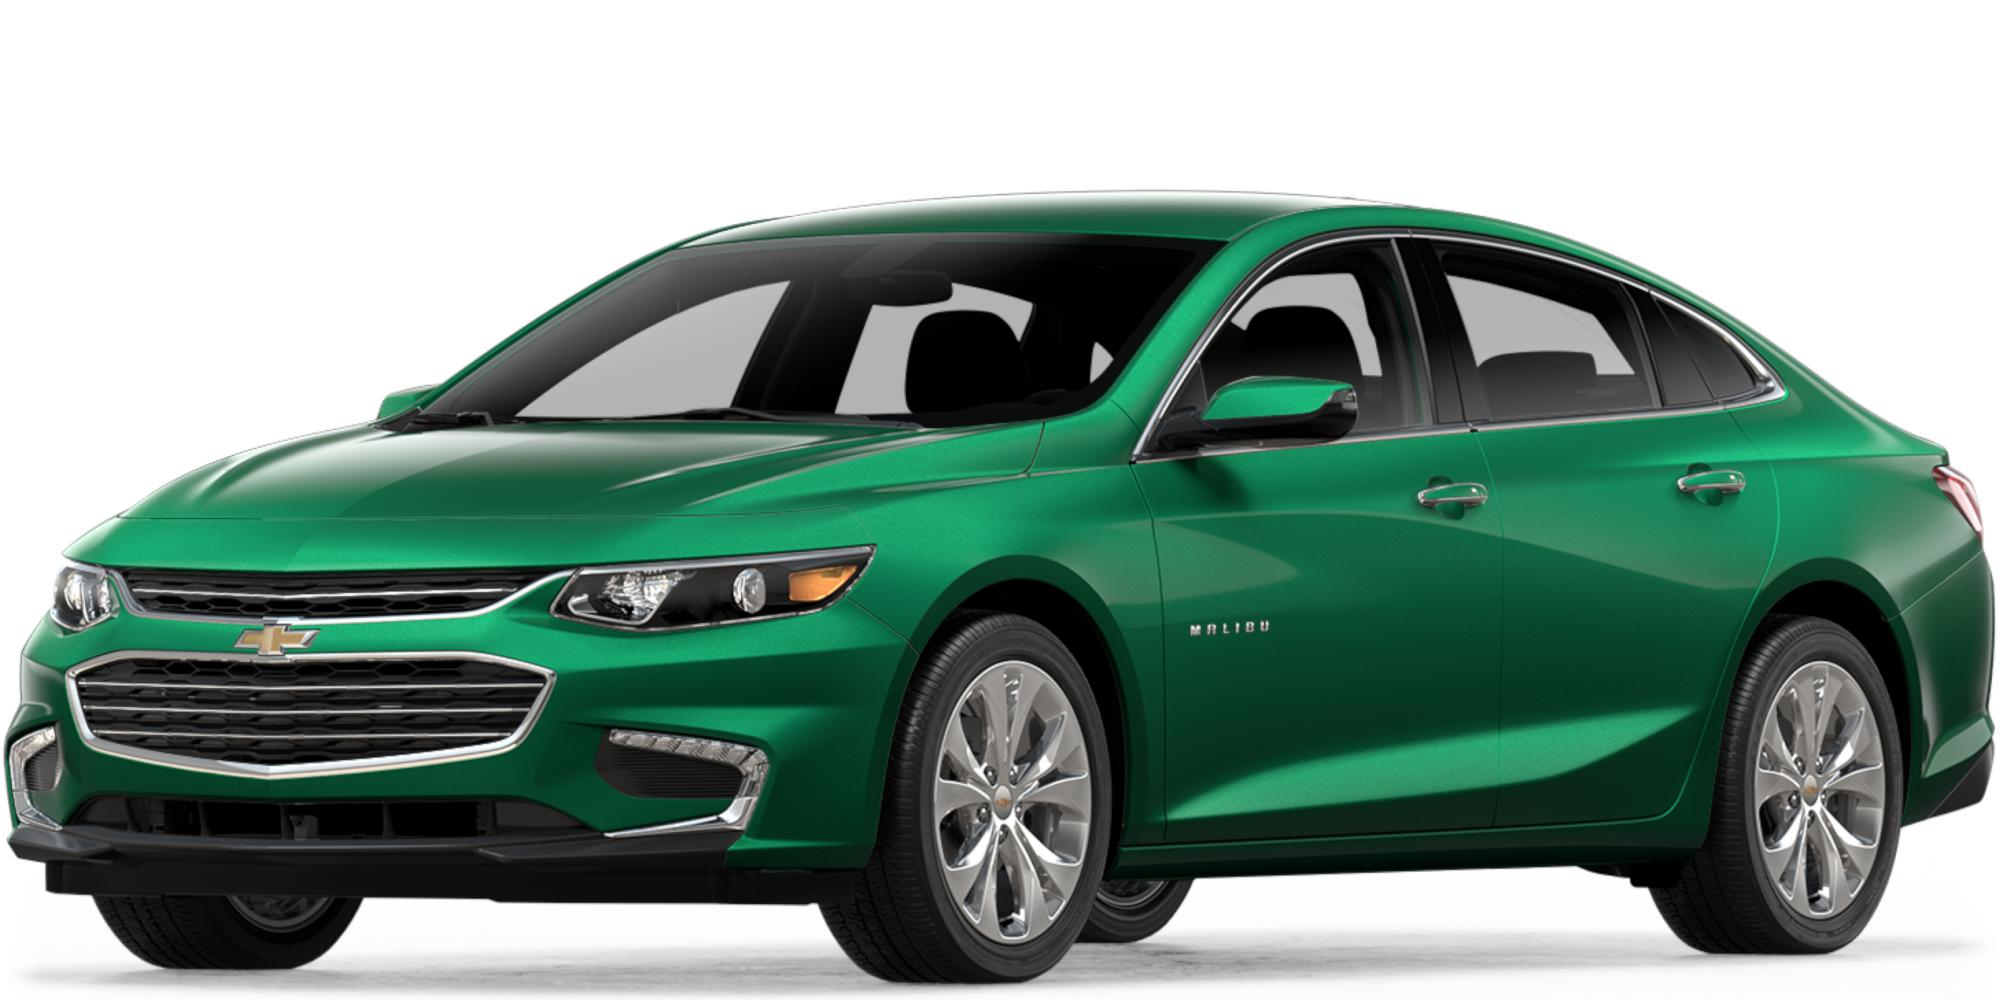 2018 Chevrolet Malibu For Sale Near Sacramento